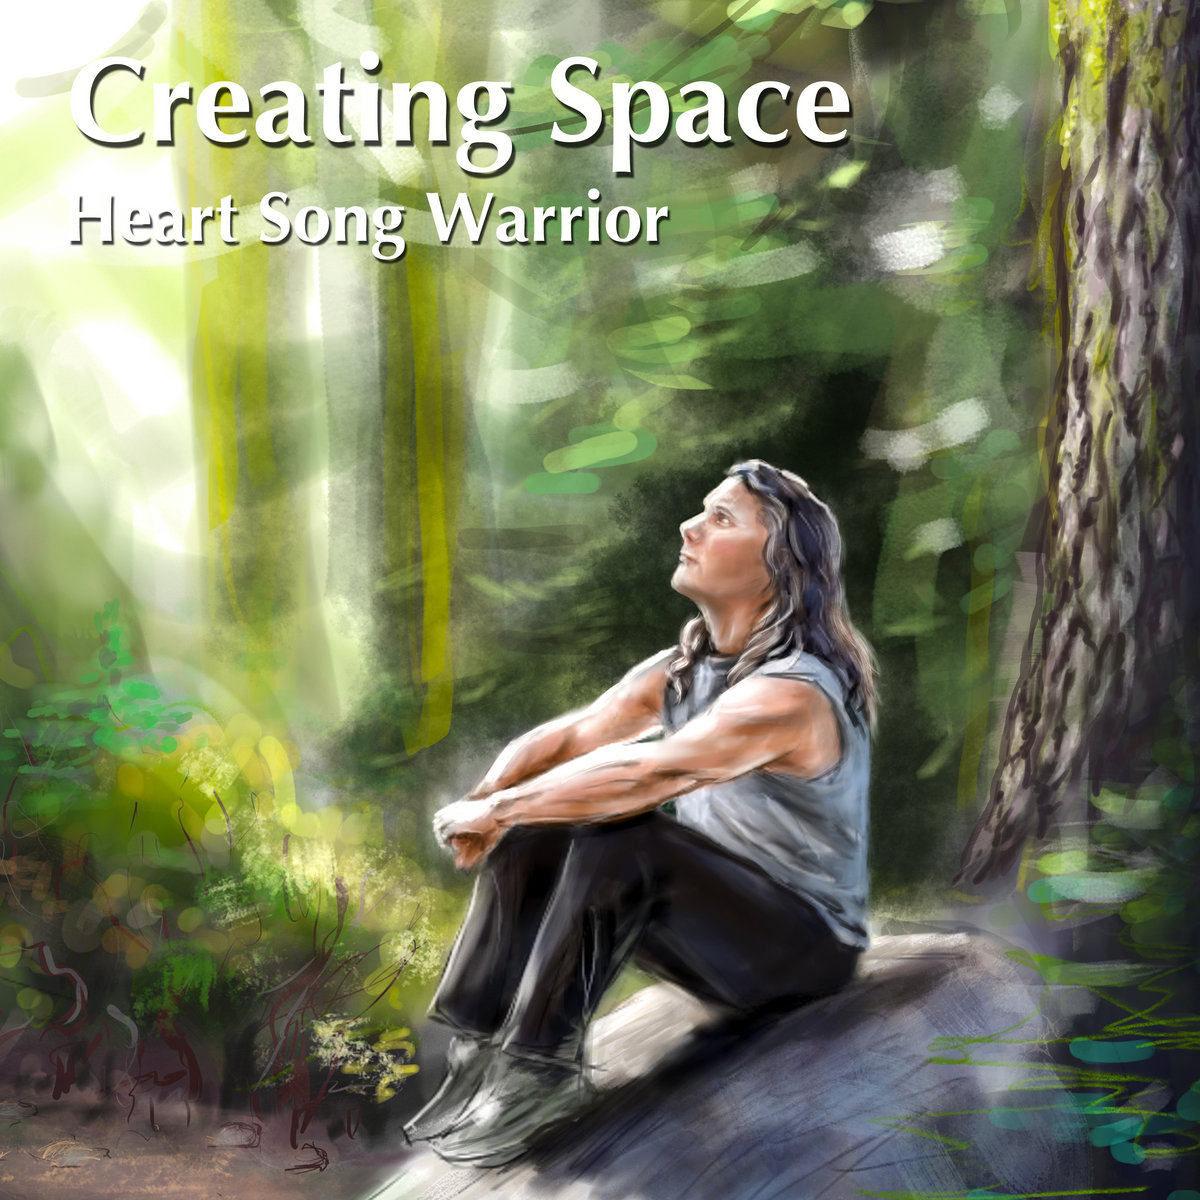 Creating Space by Heart Song Warrior